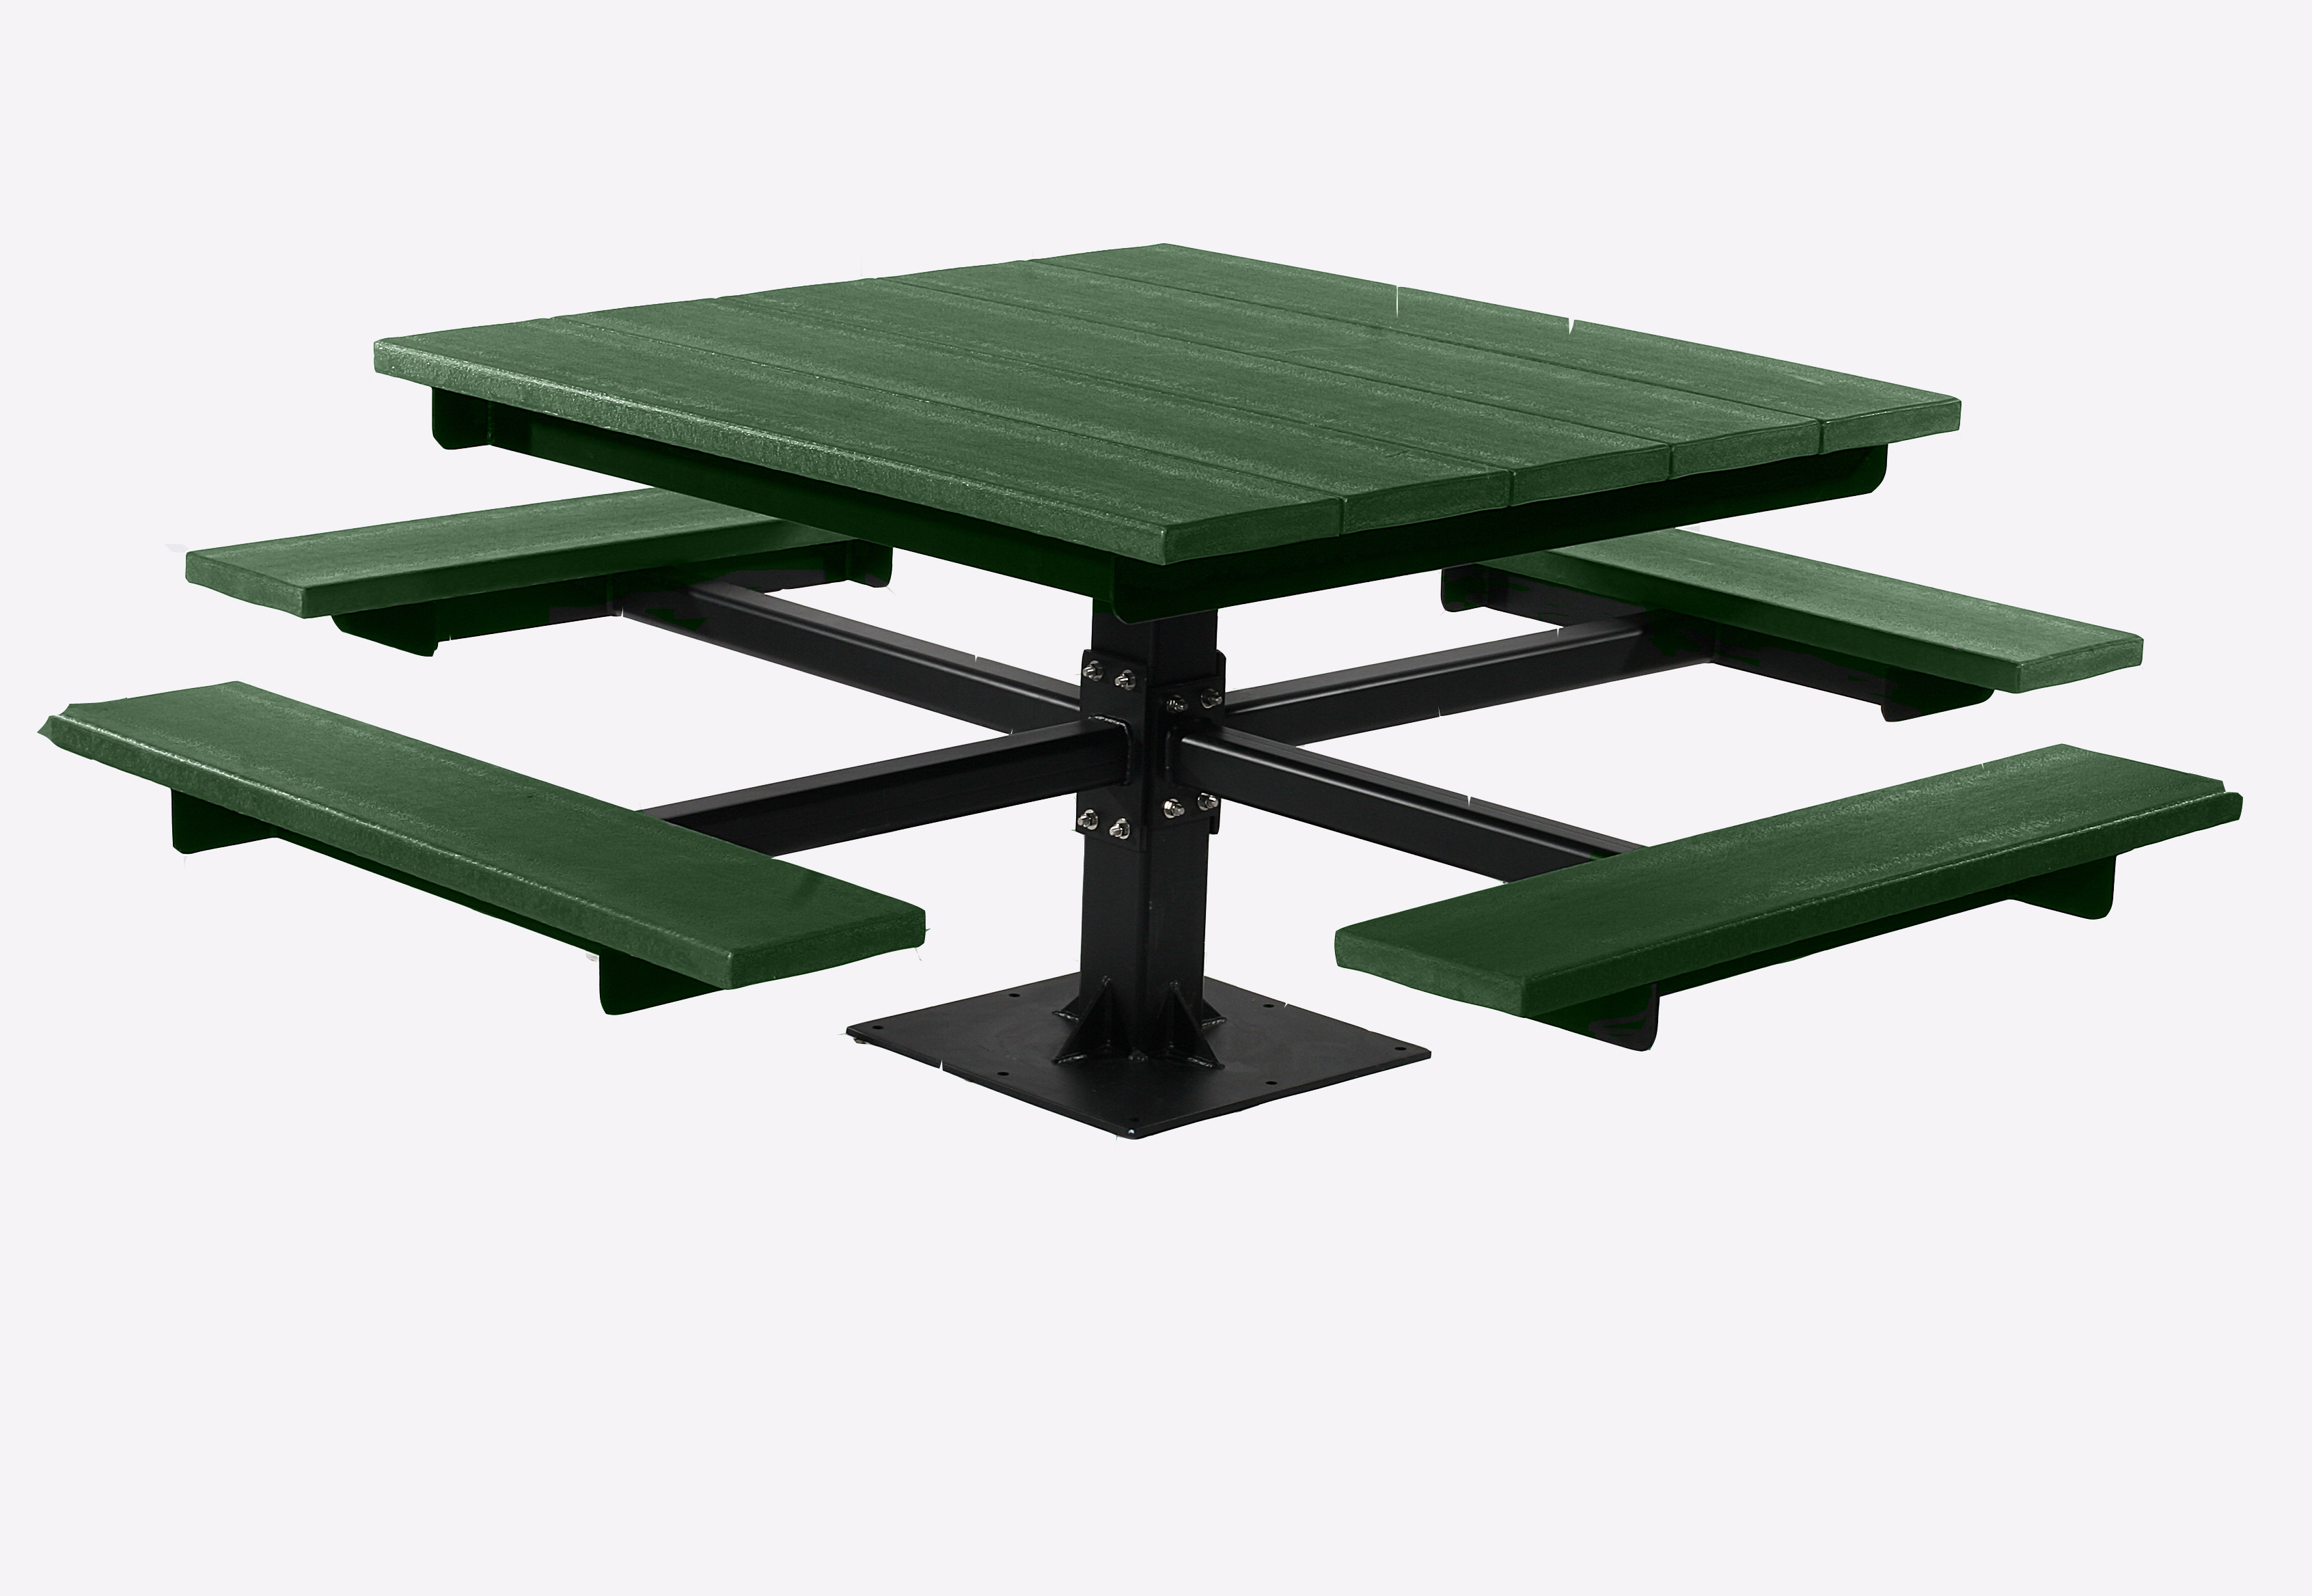 Picnic Tables - Playground Equipment for Commercial, School ...